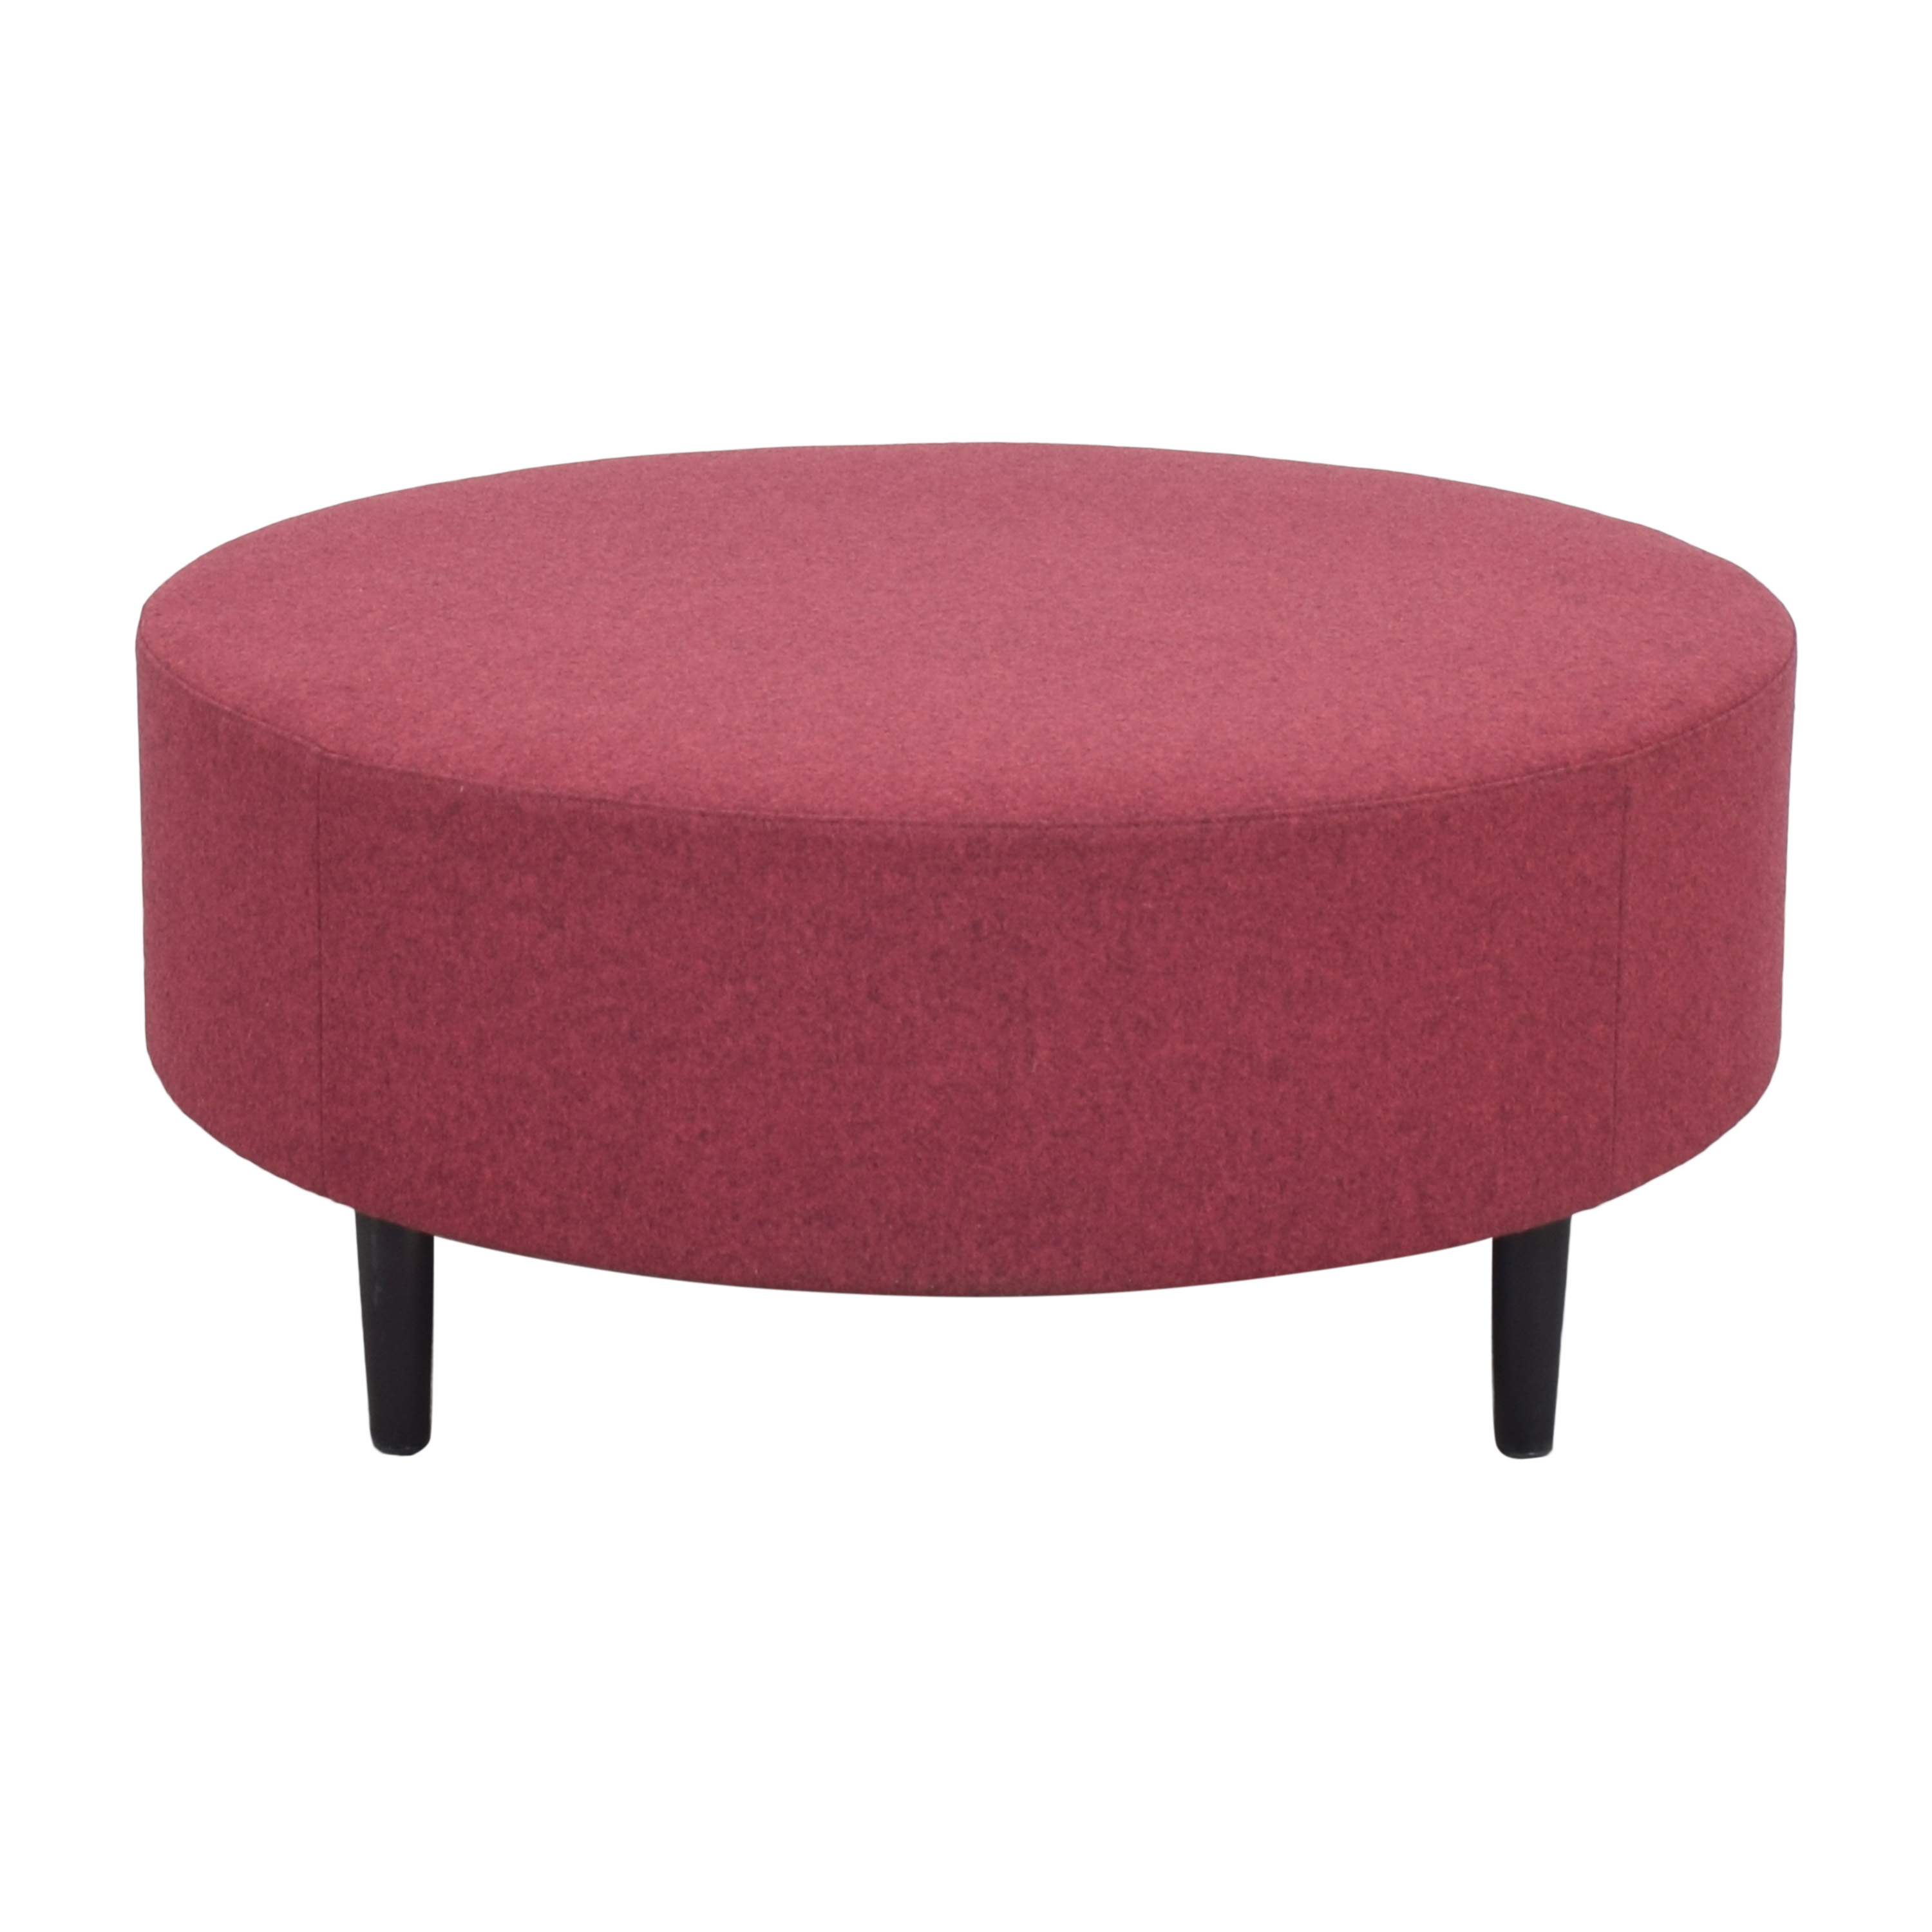 Global Furniture Group Global Furniture Group River Round Bench ct